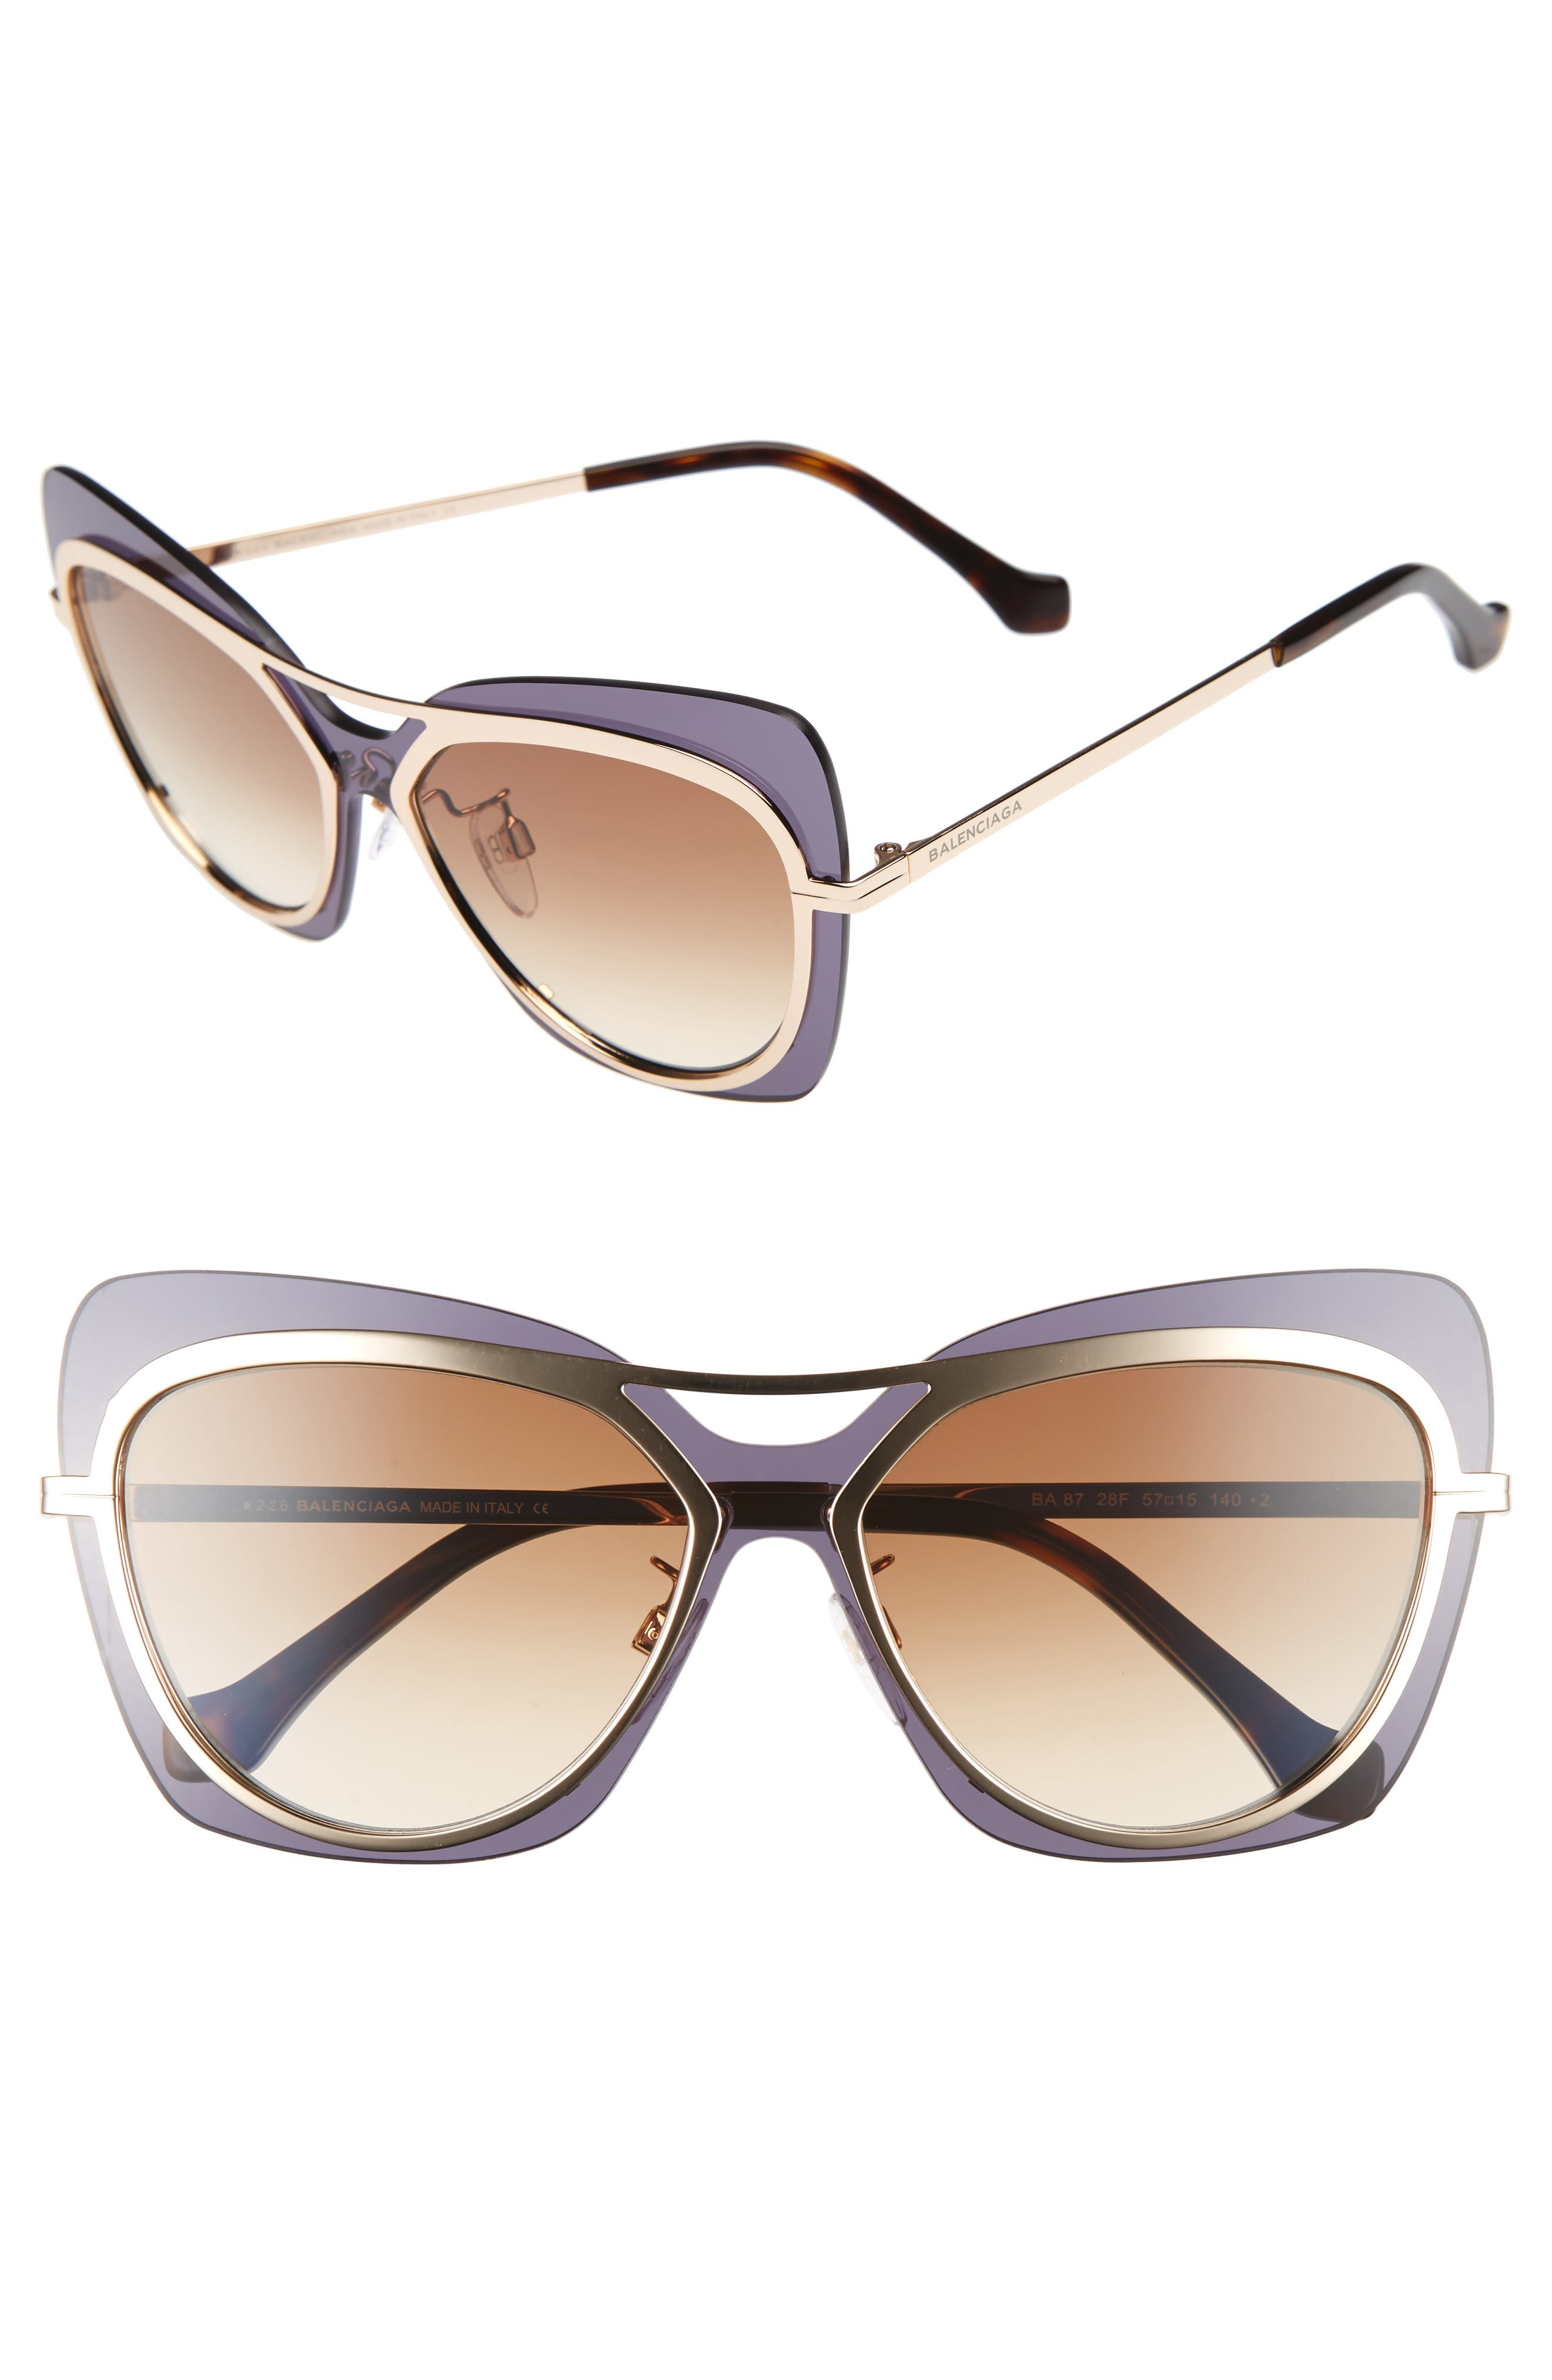 57mm Layered Butterfly Sunglasses,                             Main thumbnail 1, color,                             Rose Gold/ Havana/ Brown